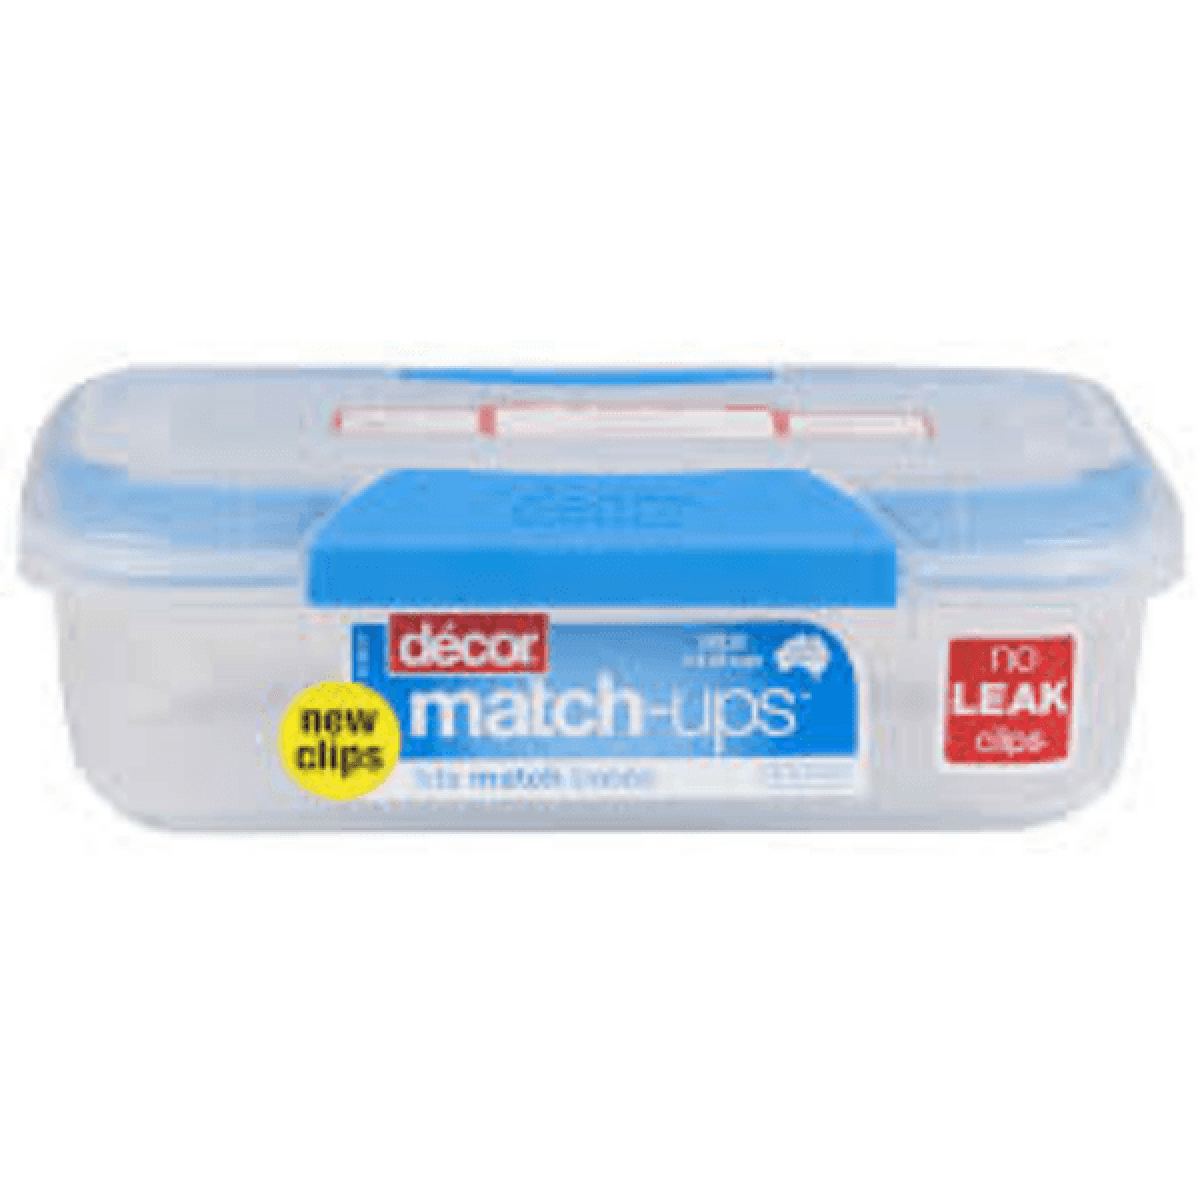 Blue Decor Match Up Clips 600ml Oblong